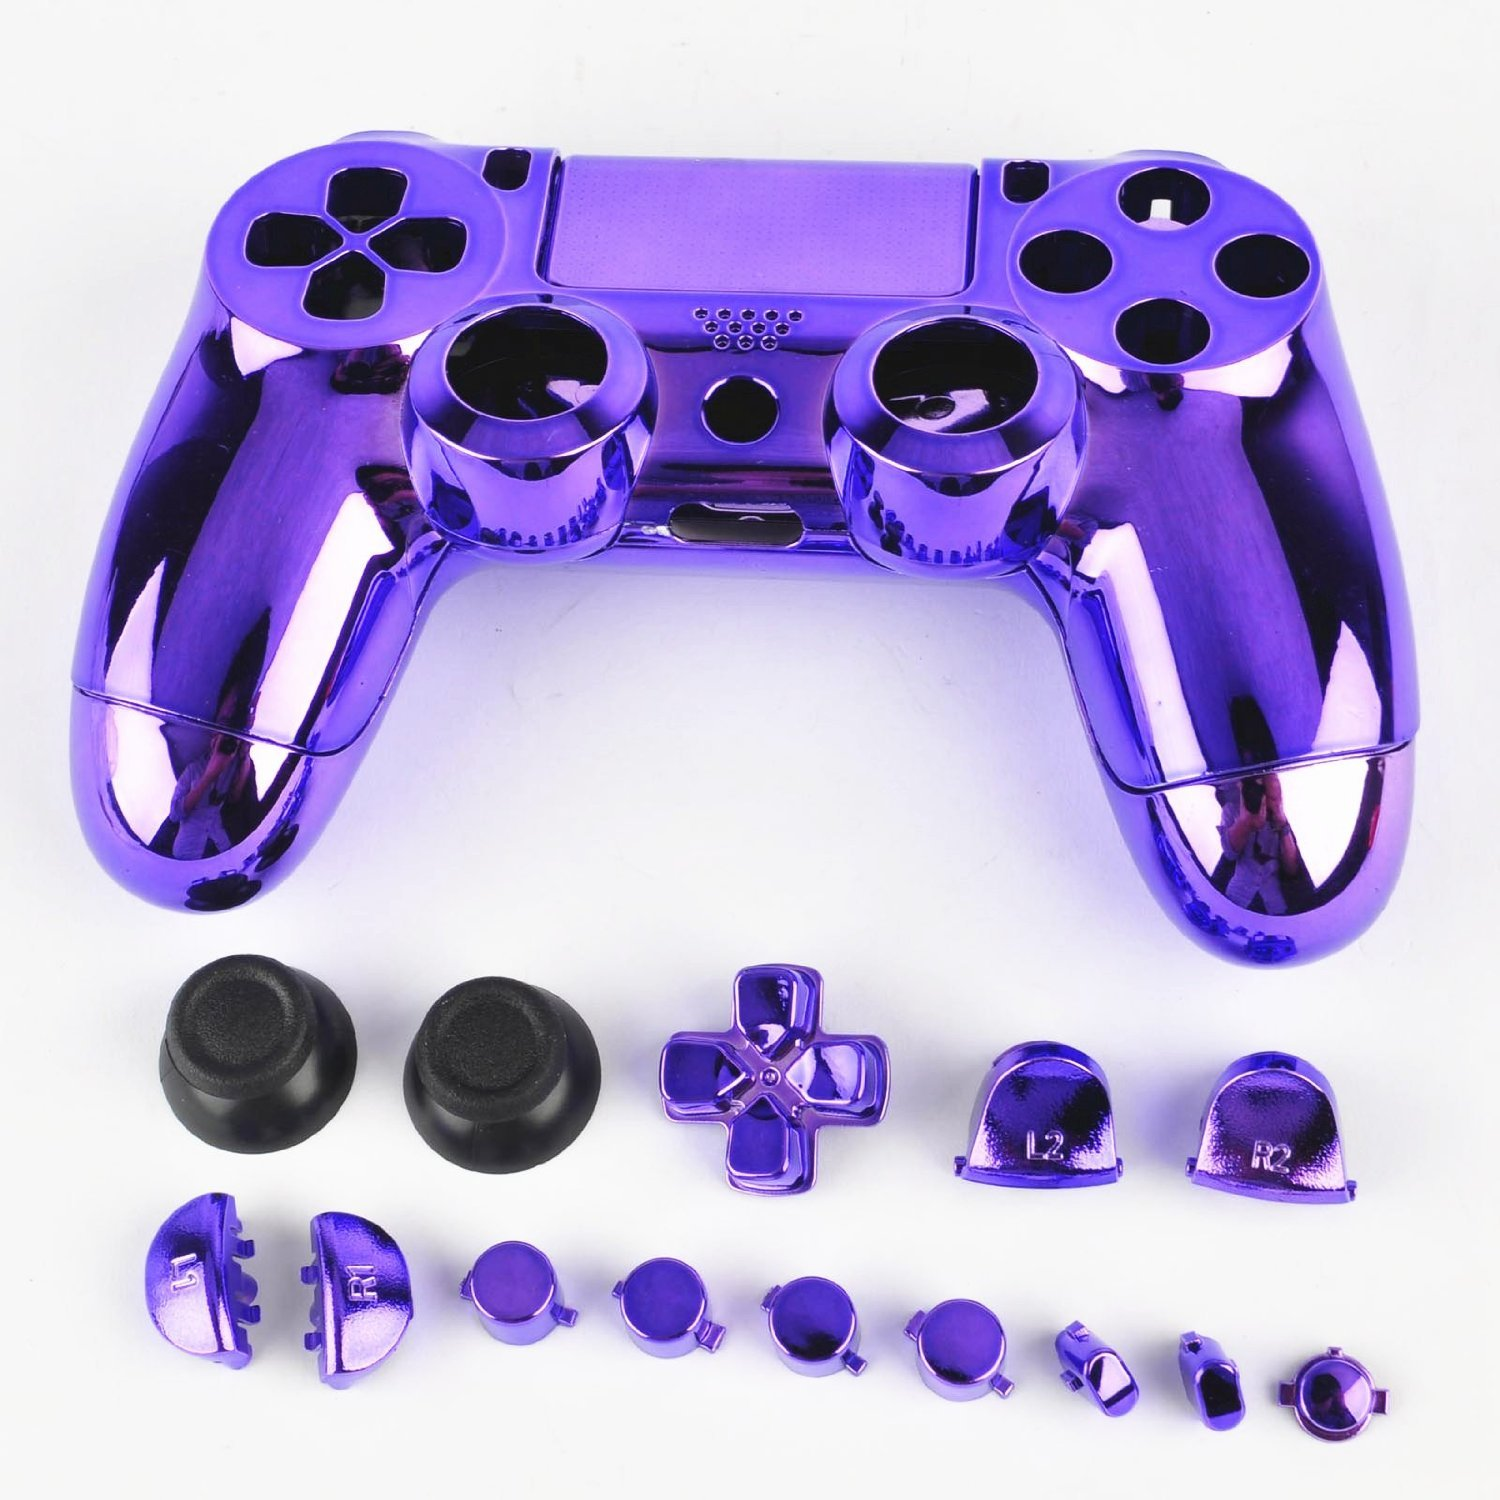 3CLeader® Case Cover Shell Skin for PS4 DualShock 4 Controller with Buttons Chrome Plating Color Purple xya1488 protective cover skin controller sticker for ps4